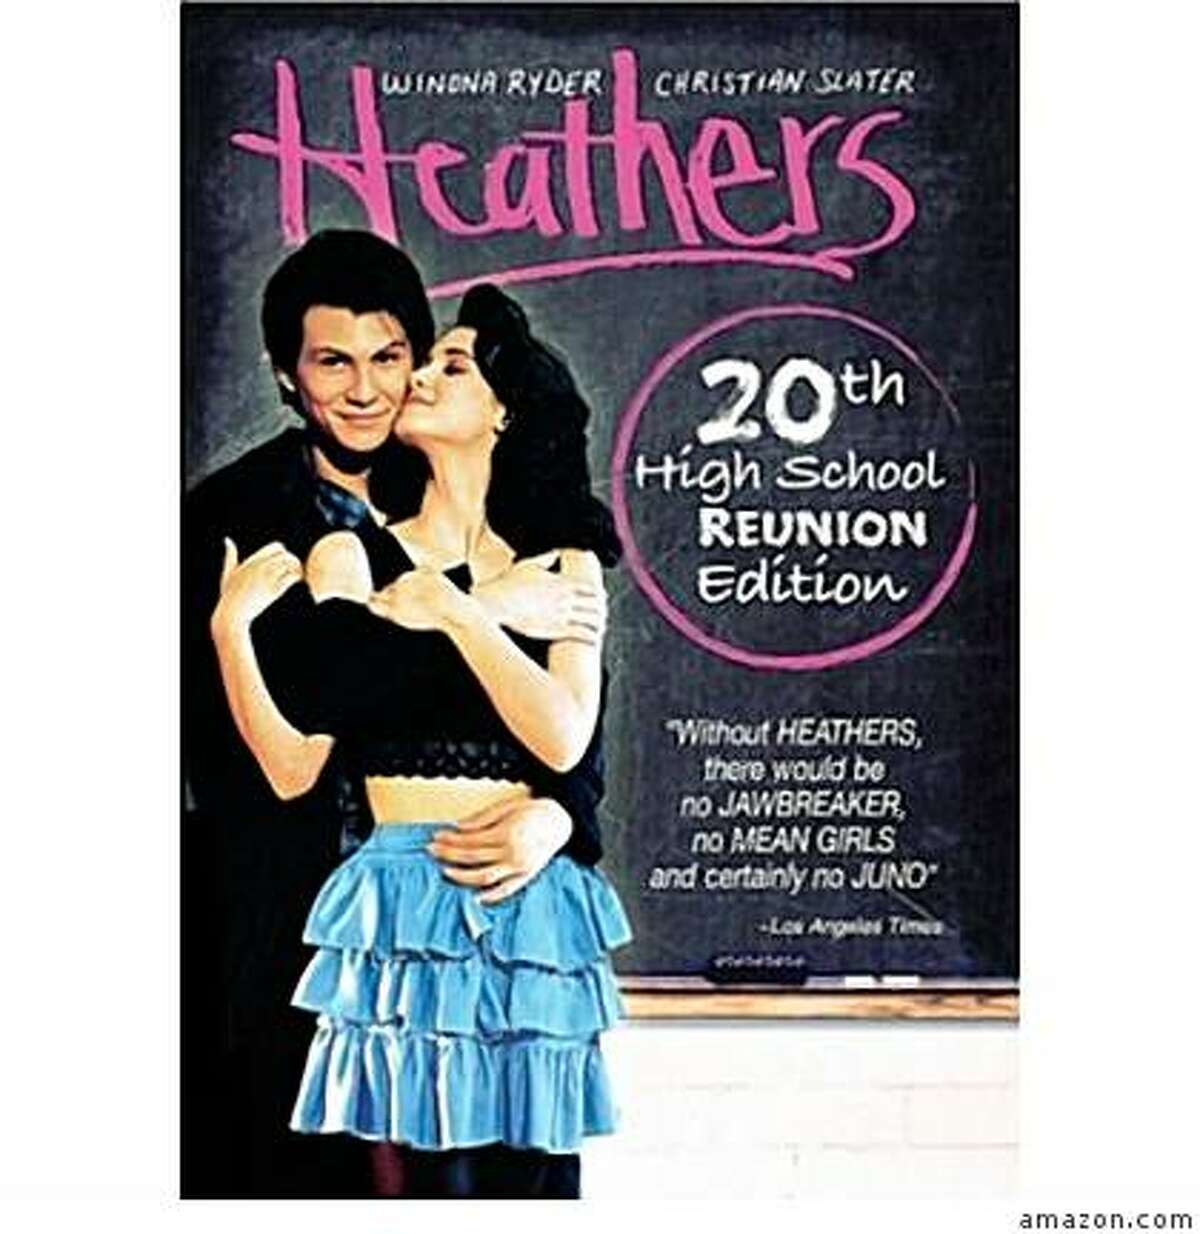 dvd cover: HEATHERS: 20th HIGH SCHOOL REUNION EDITION